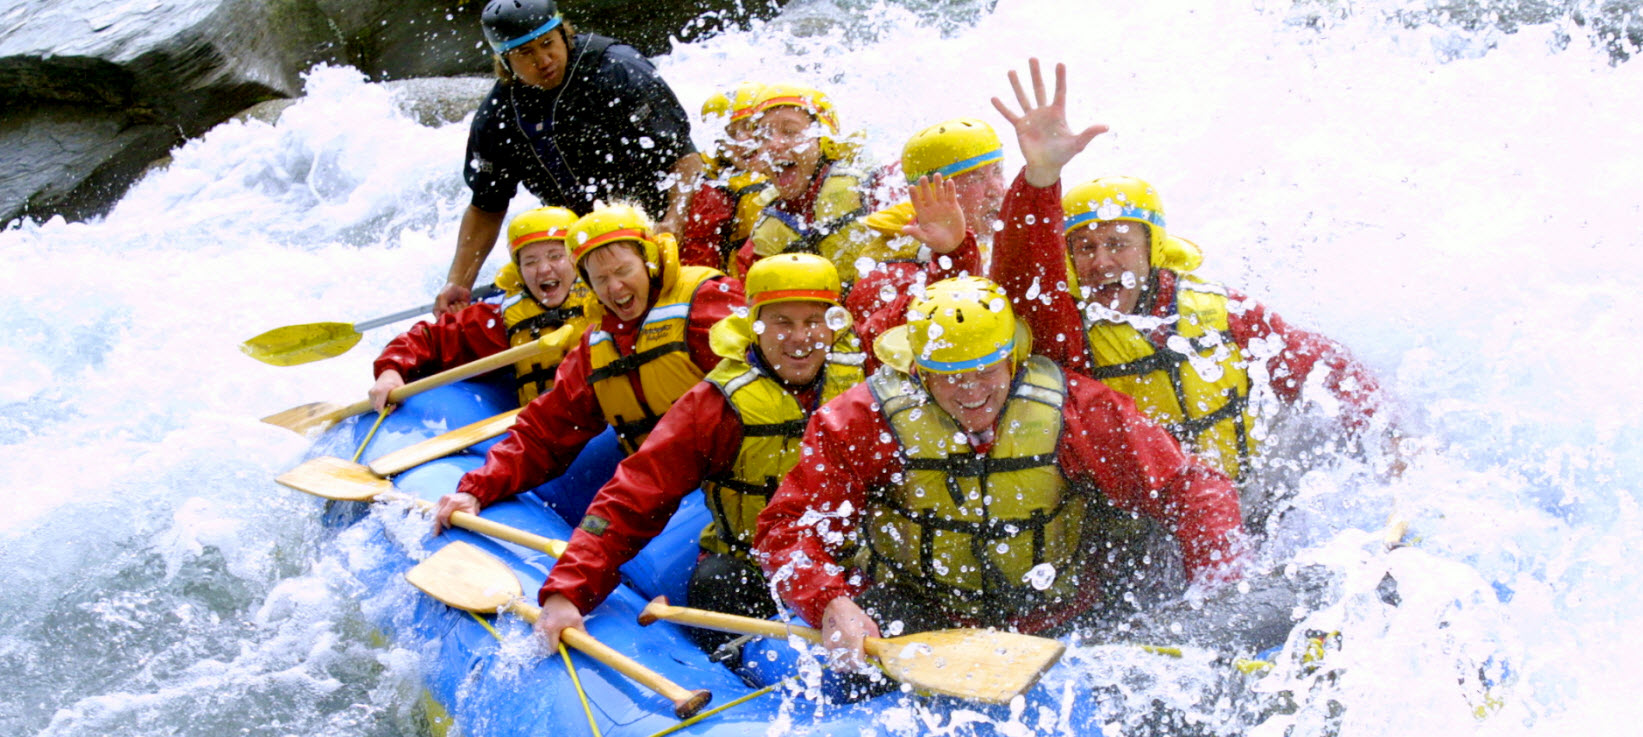 Rotorua white water rafting credit Queenstown Rafting.jpg